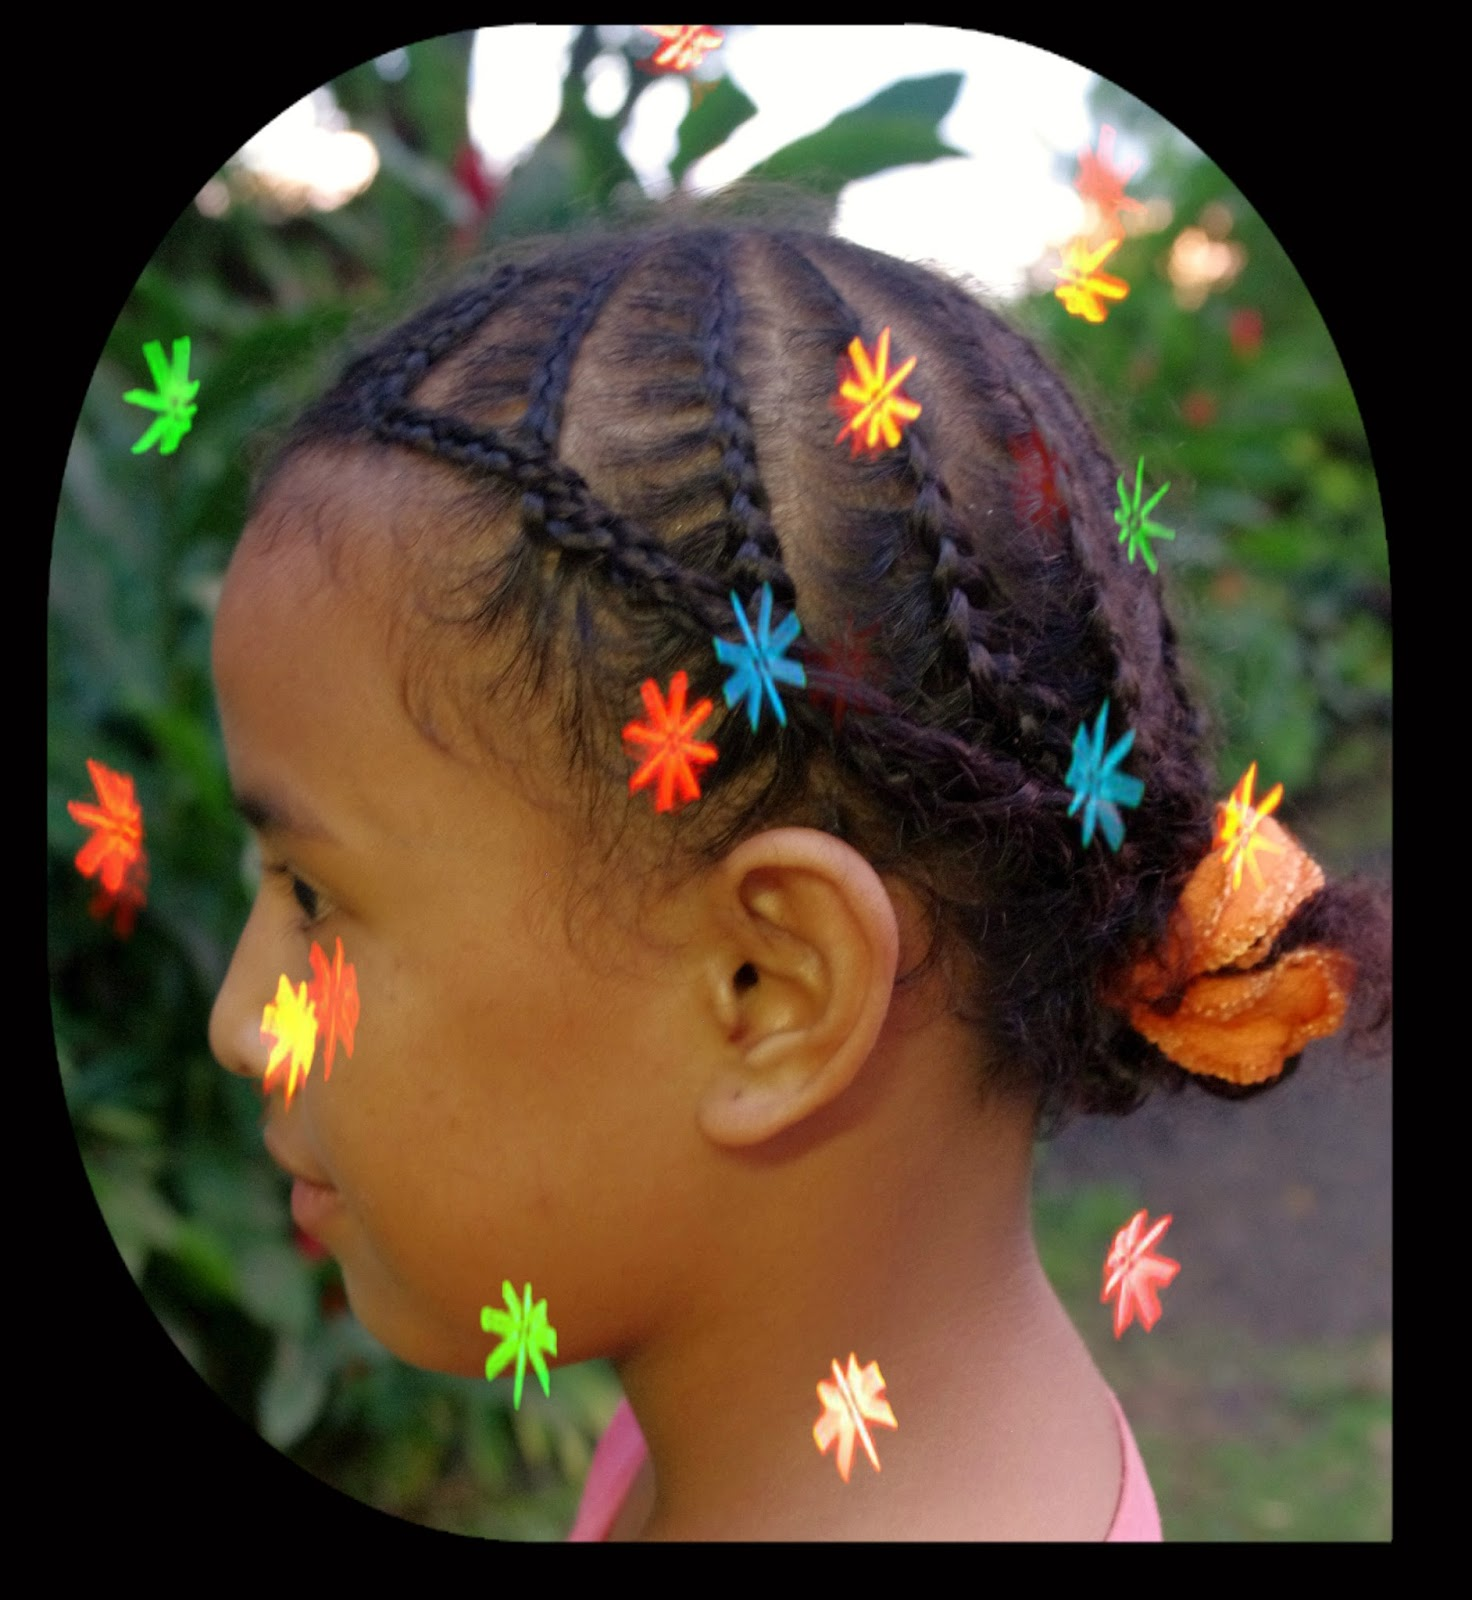 handsome hair styles braids amp hairstyles for hair micronesian 4630 | IMGP4630a